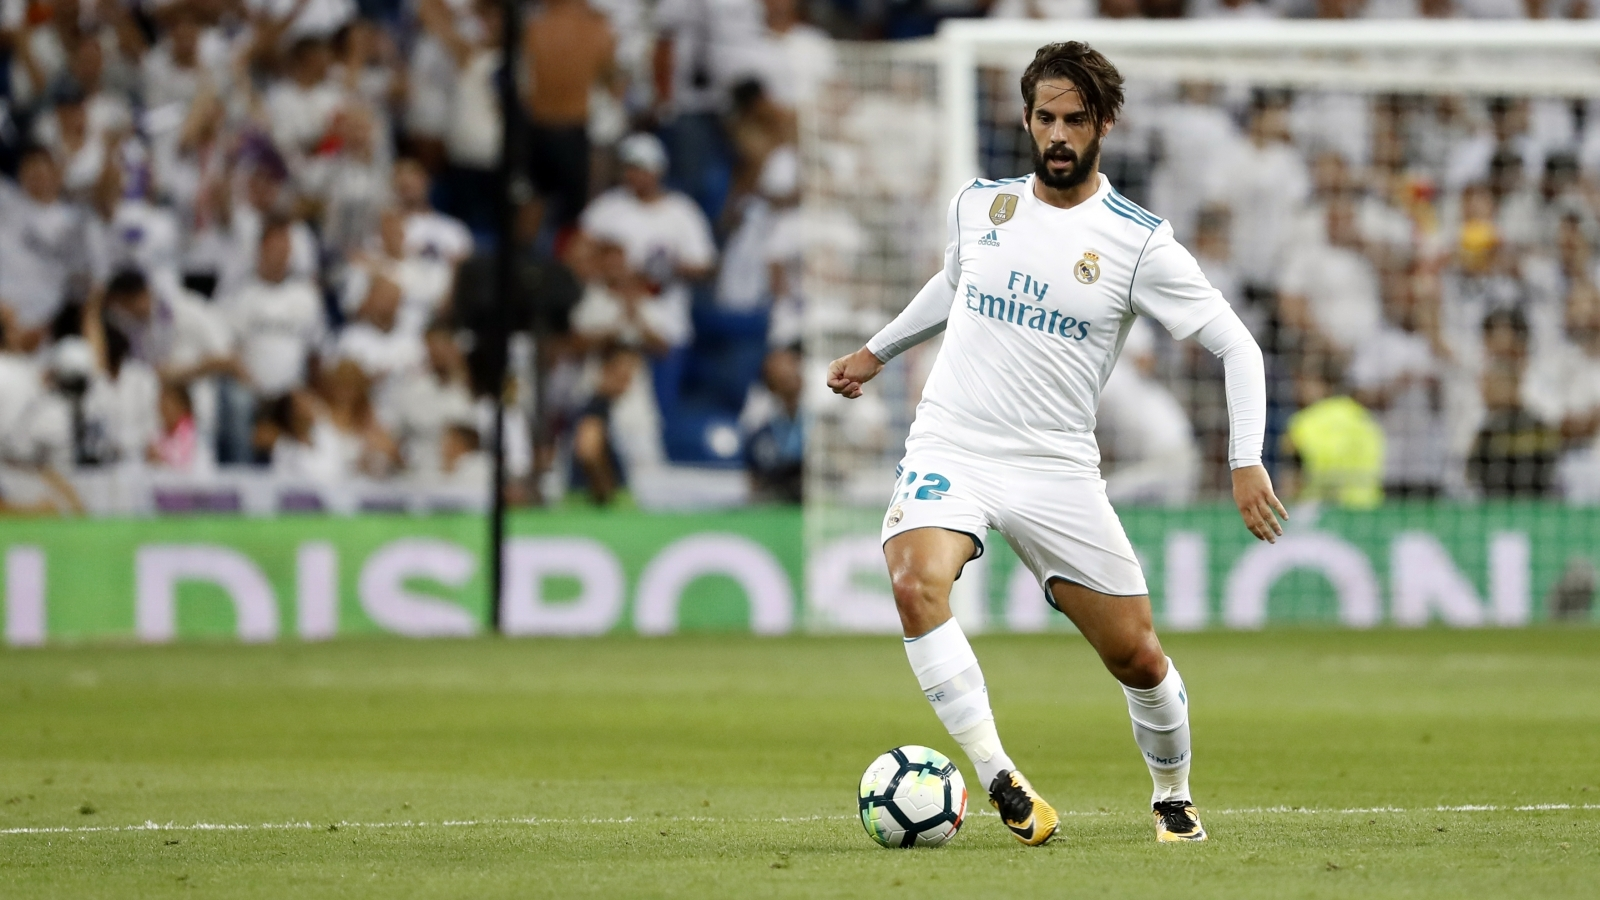 Real Madrid Wallpaper Full Hd Barcelona Chief Coy On Isco Approach But Remains